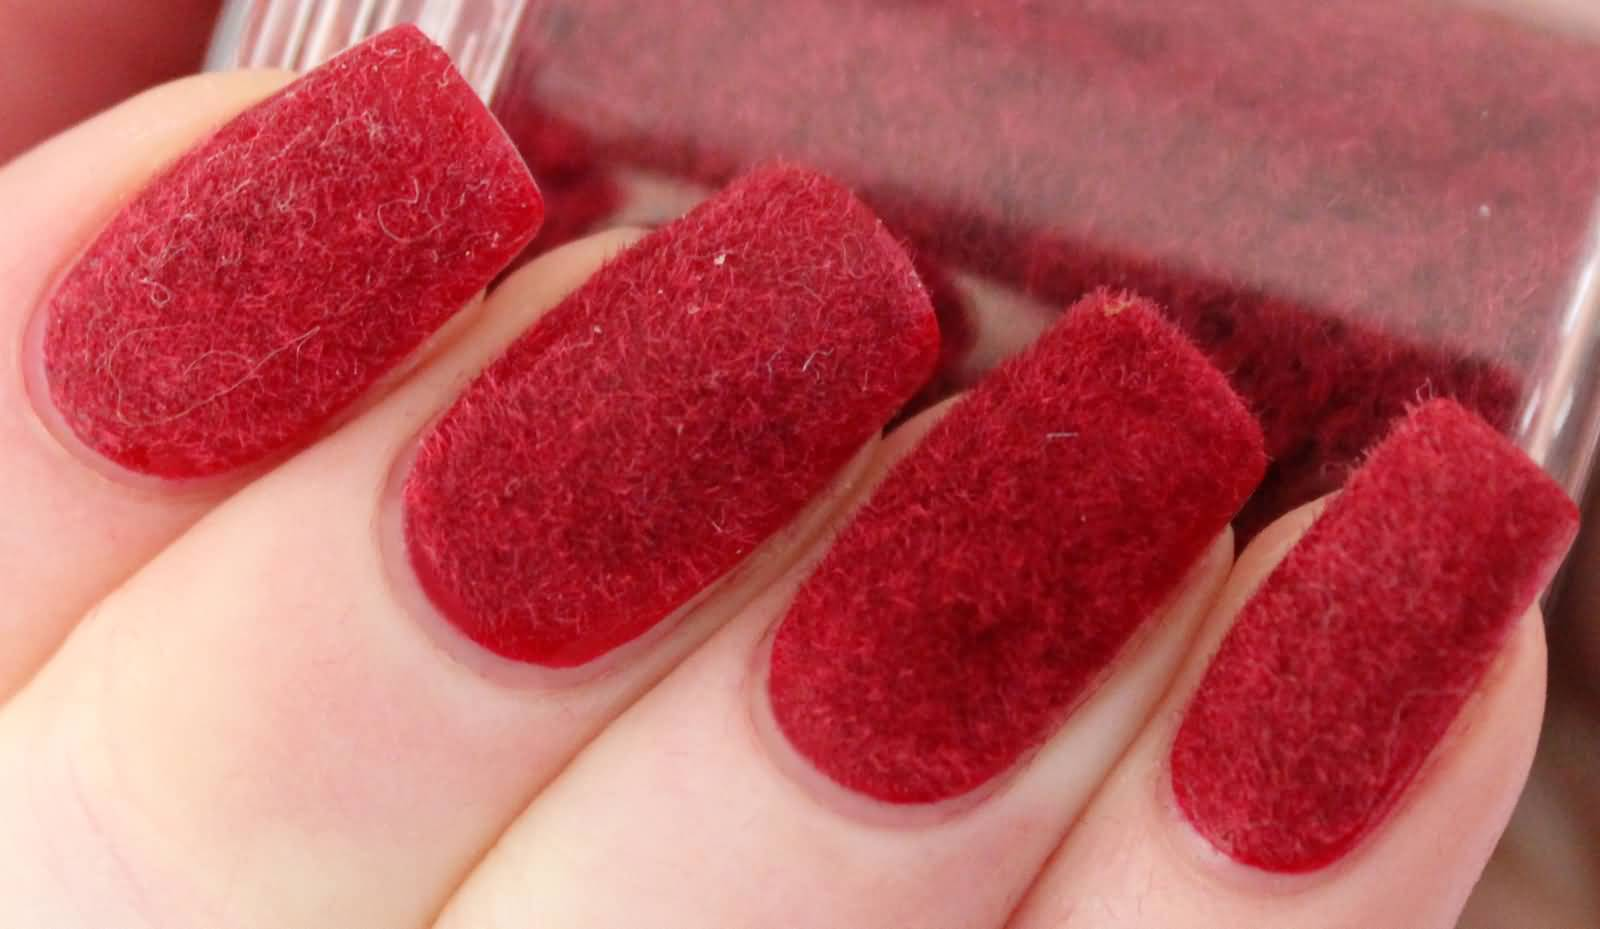 52 incredible red nail art design pictures red velvet nail art design idea prinsesfo Image collections